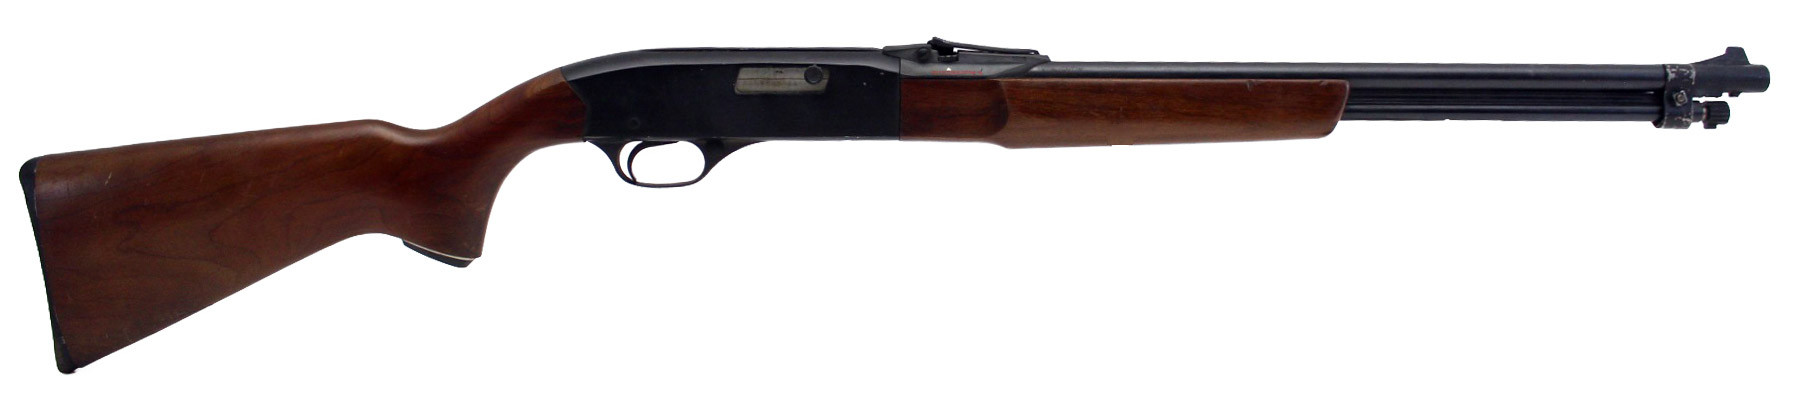 Winchester 290, .22 LR, *Poor, Incomplete*